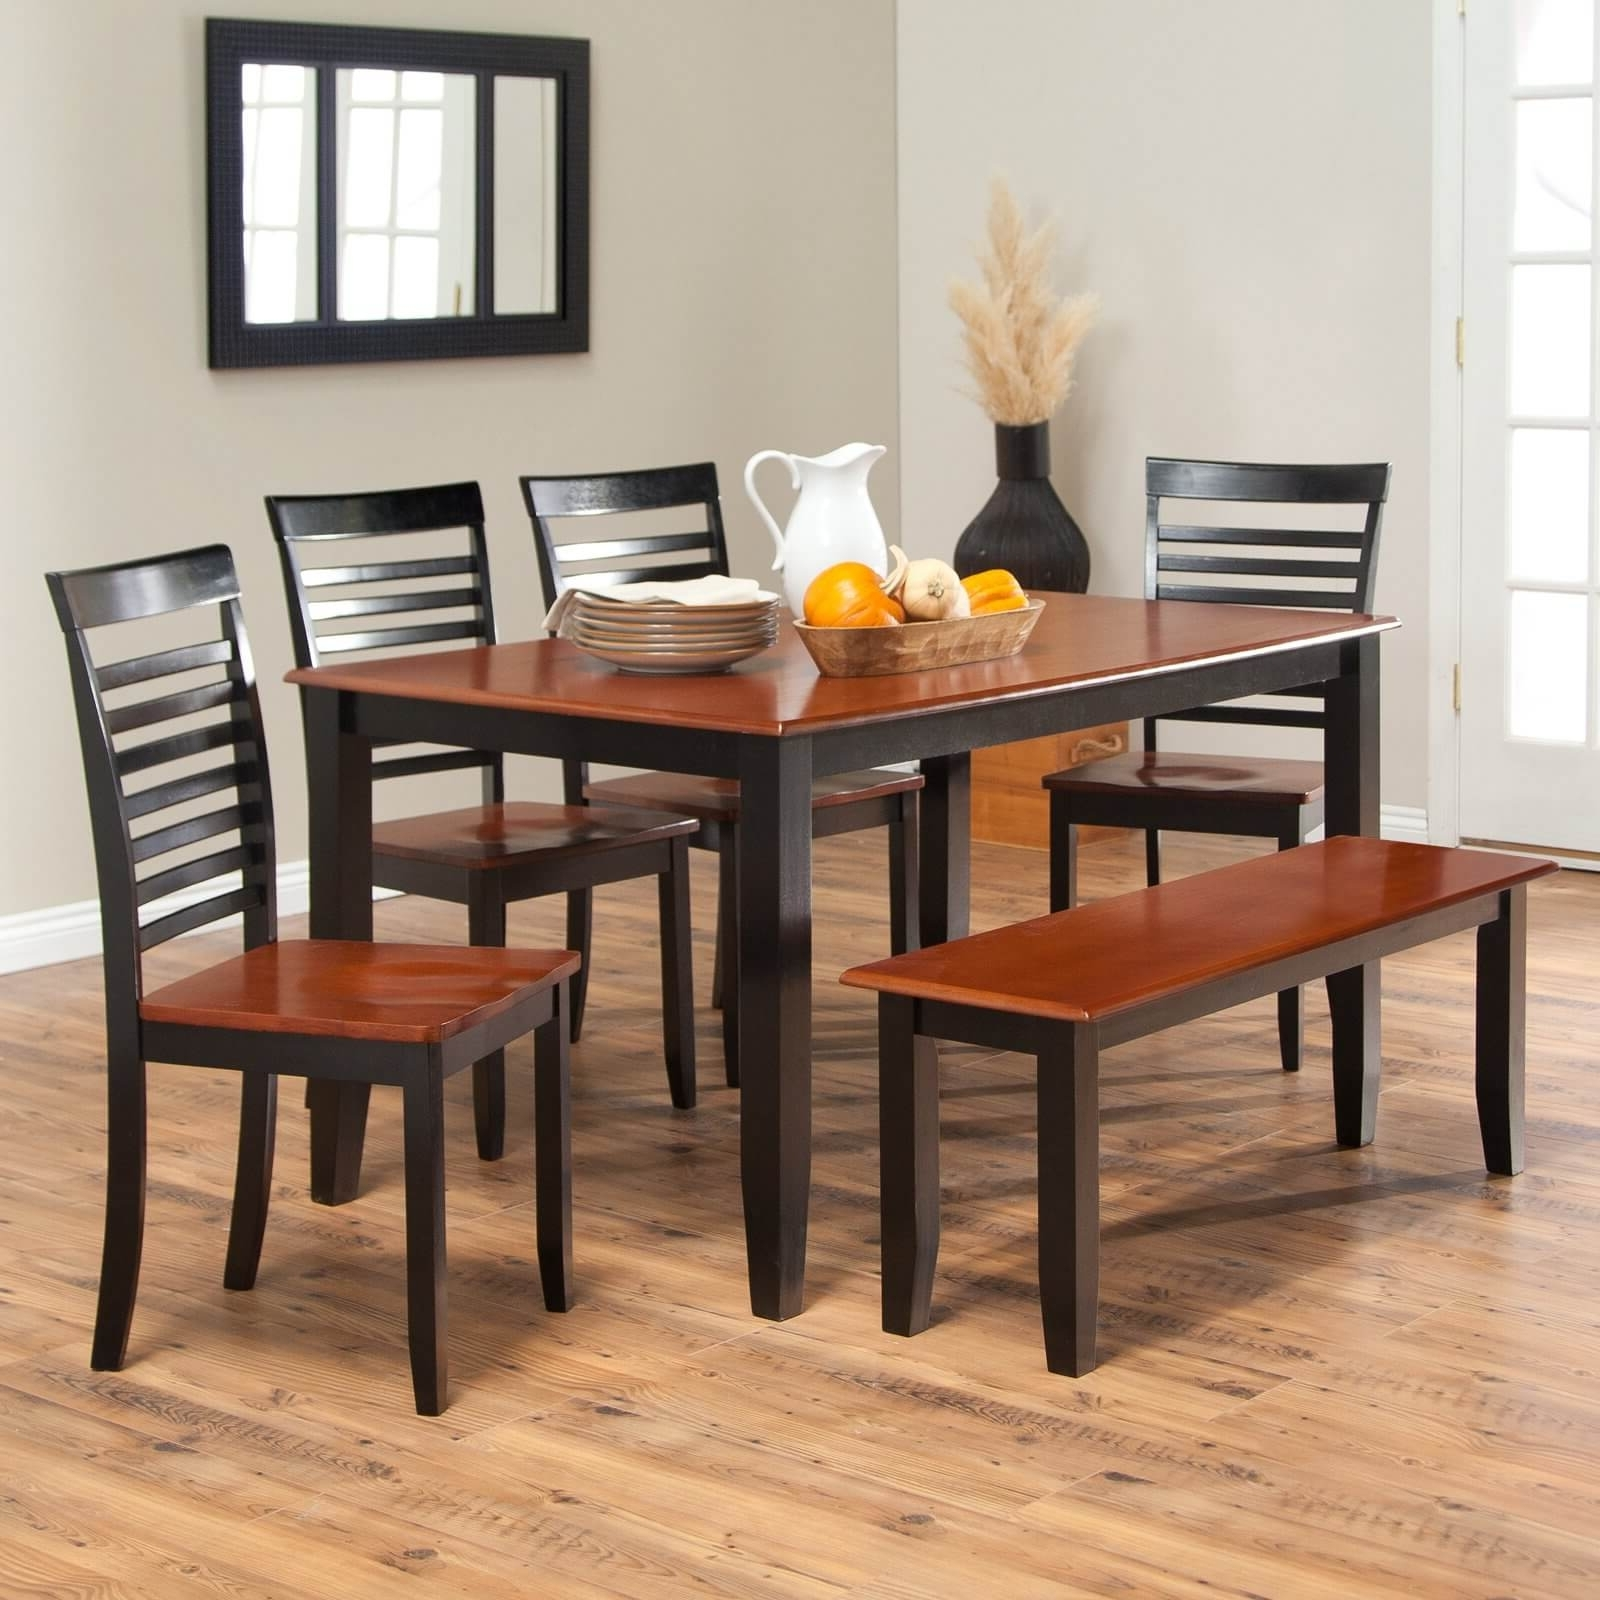 Craftsman 5 Piece Round Dining Sets With Uph Side Chairs Inside Favorite 26 Dining Room Sets (Big And Small) With Bench Seating (2018) (View 12 of 25)